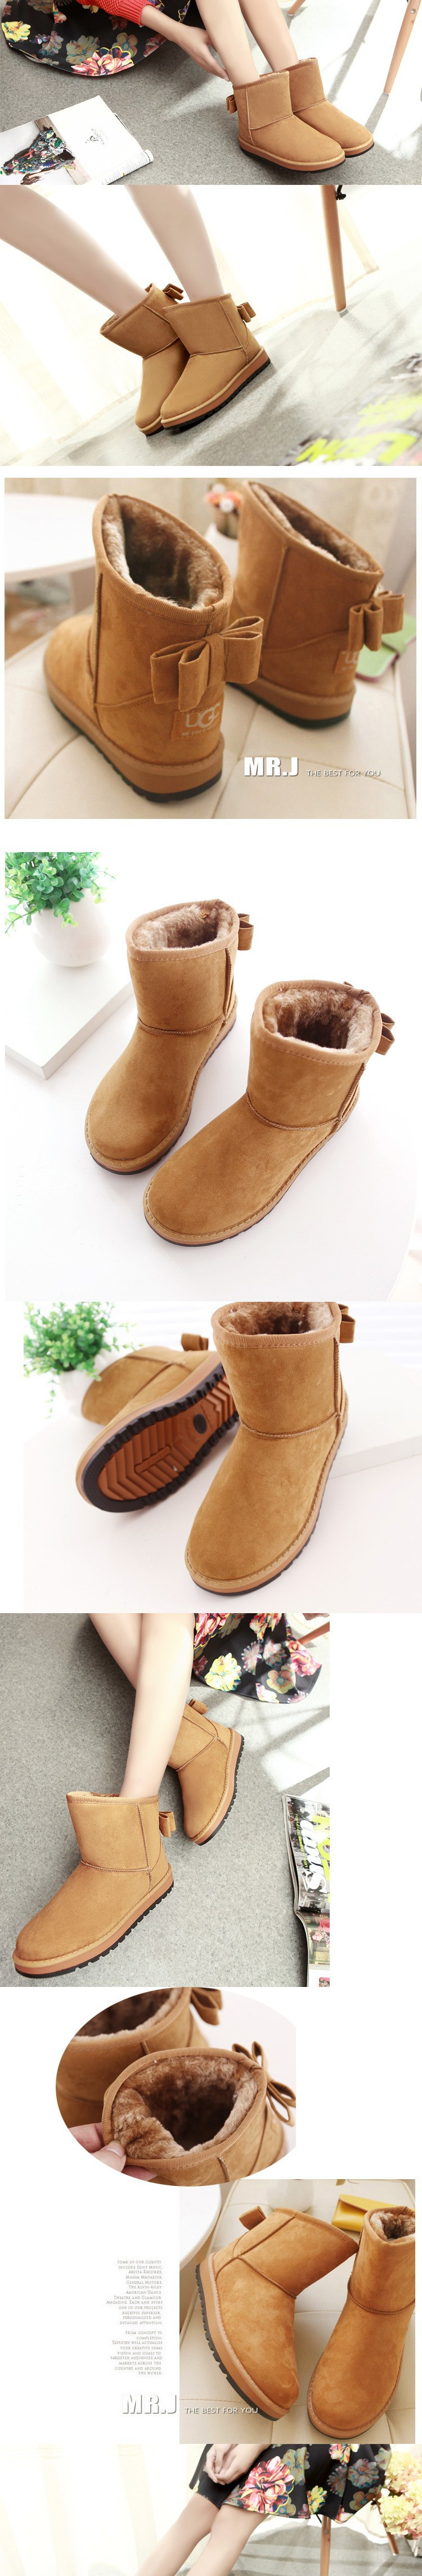 2015 Brand Women Winter Snow Boots Fashion Fur Boots high heels women Boots Shoes High Increased botas Mujer New Arrival B14 (1)